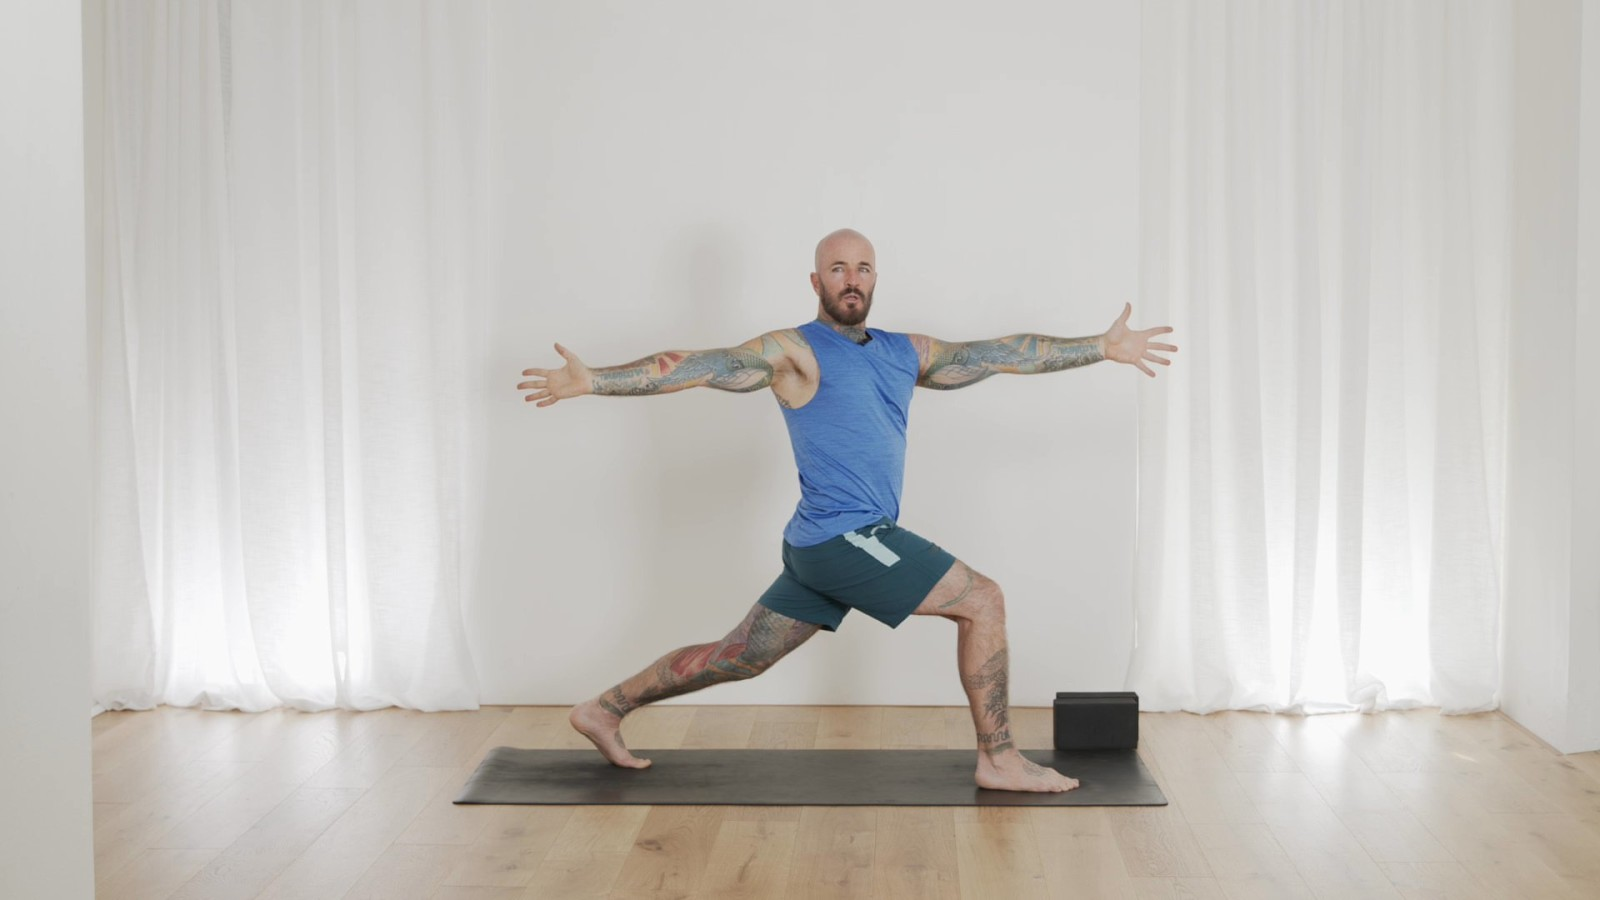 Yoga Foundations - Twist The Tension Out with Ari Levanael